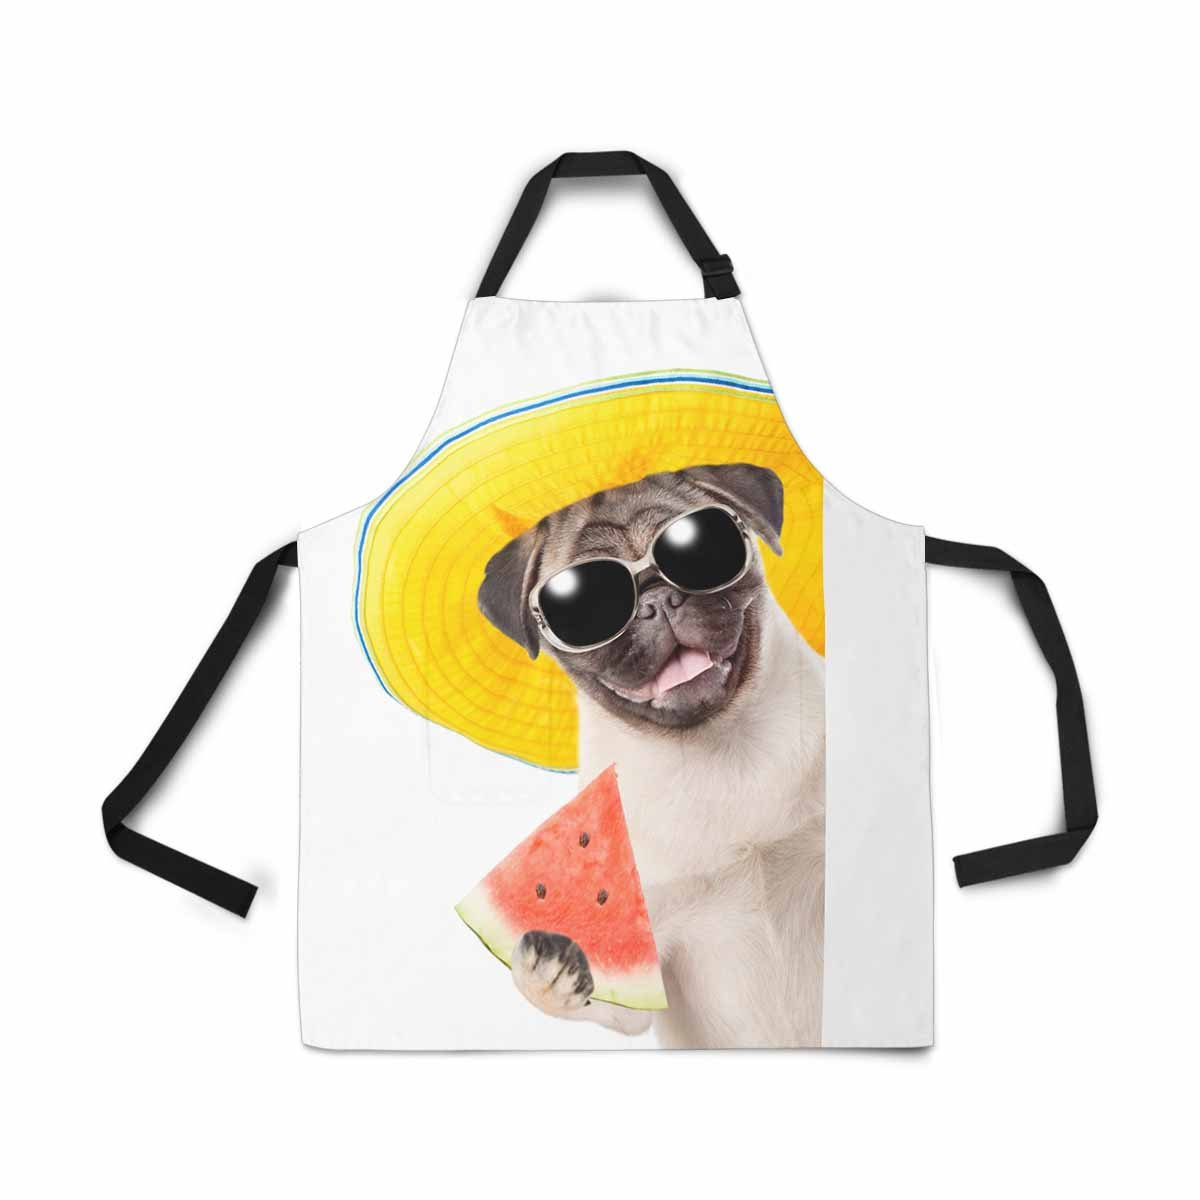 InterestPrint Funny Summer Puppy Dog with Sunglasses Holding Watermelon Chef Kitchen Apron, Adjustable Strap & Waist Ties, Front Pockets, Perfect for Cooking, Baking, Barbequing, Large Size by InterestPrint (Image #2)